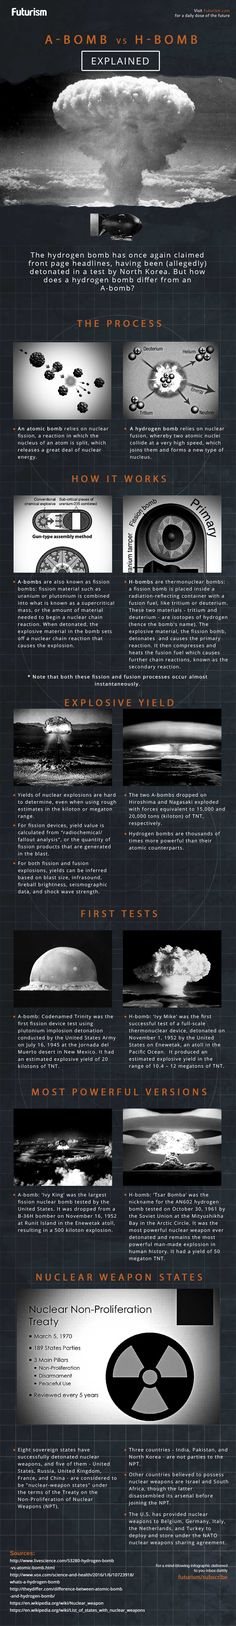 The atom bombs dropped on Hiroshima and Nagasaki were terribly destructive. Hydrogen bombs are over 3,000 times as powerful. Here's why.